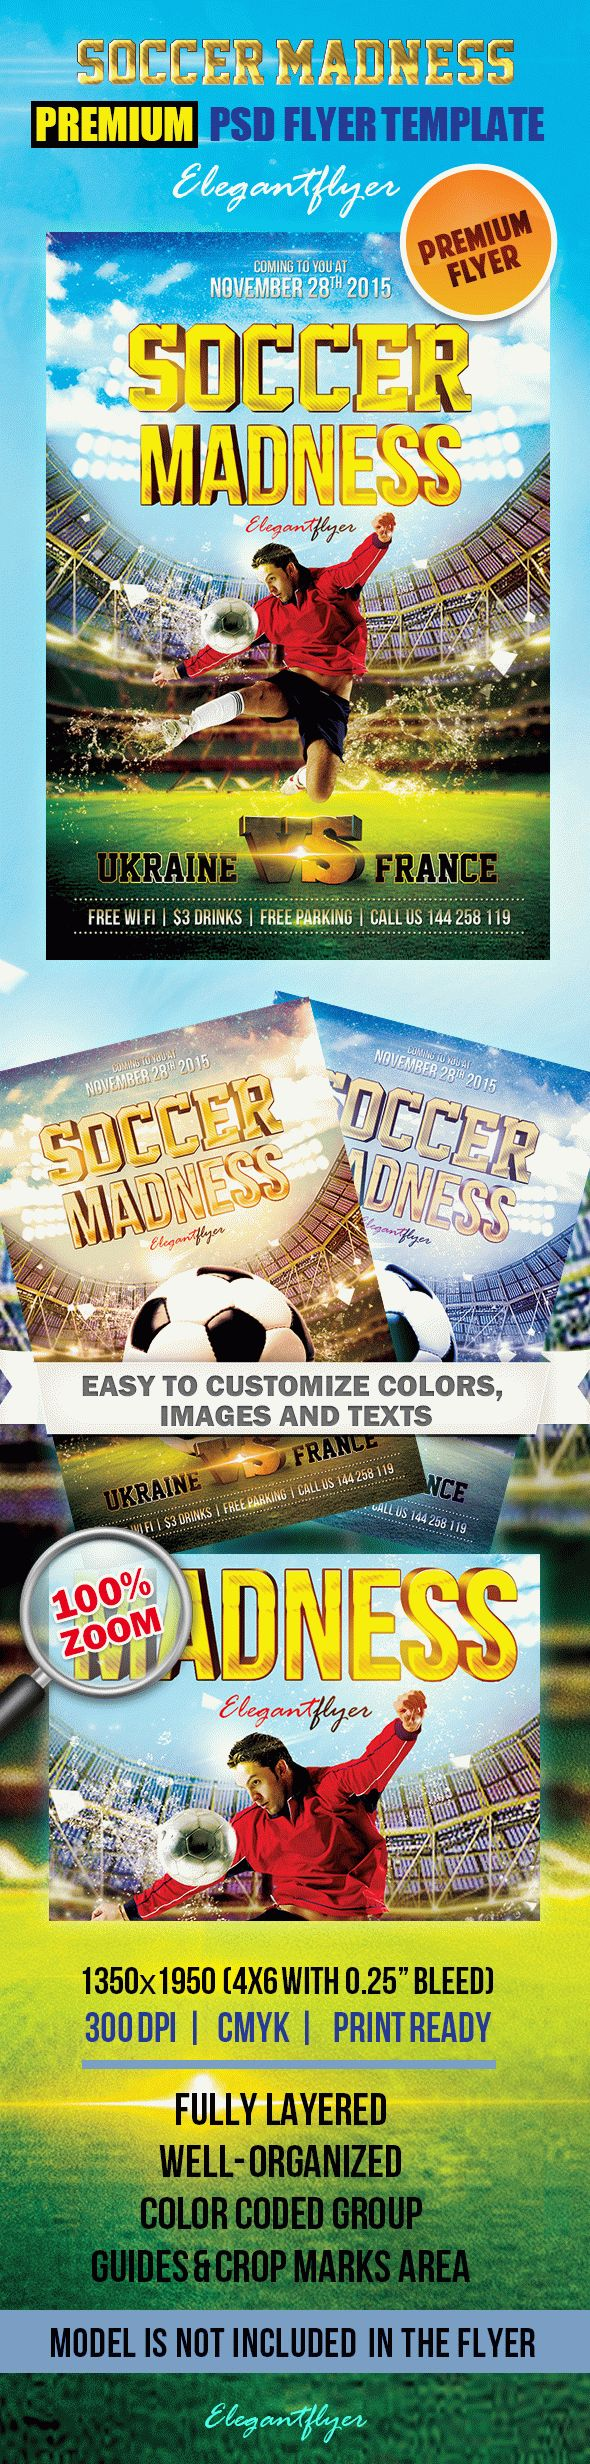 Collection Of Sports Flyer Templates On Behance, 22 Football Flyer Templates  Free Psd Eps Ai Indesign Word, Soccer Championship Flyer Flyers Soccer Flyer